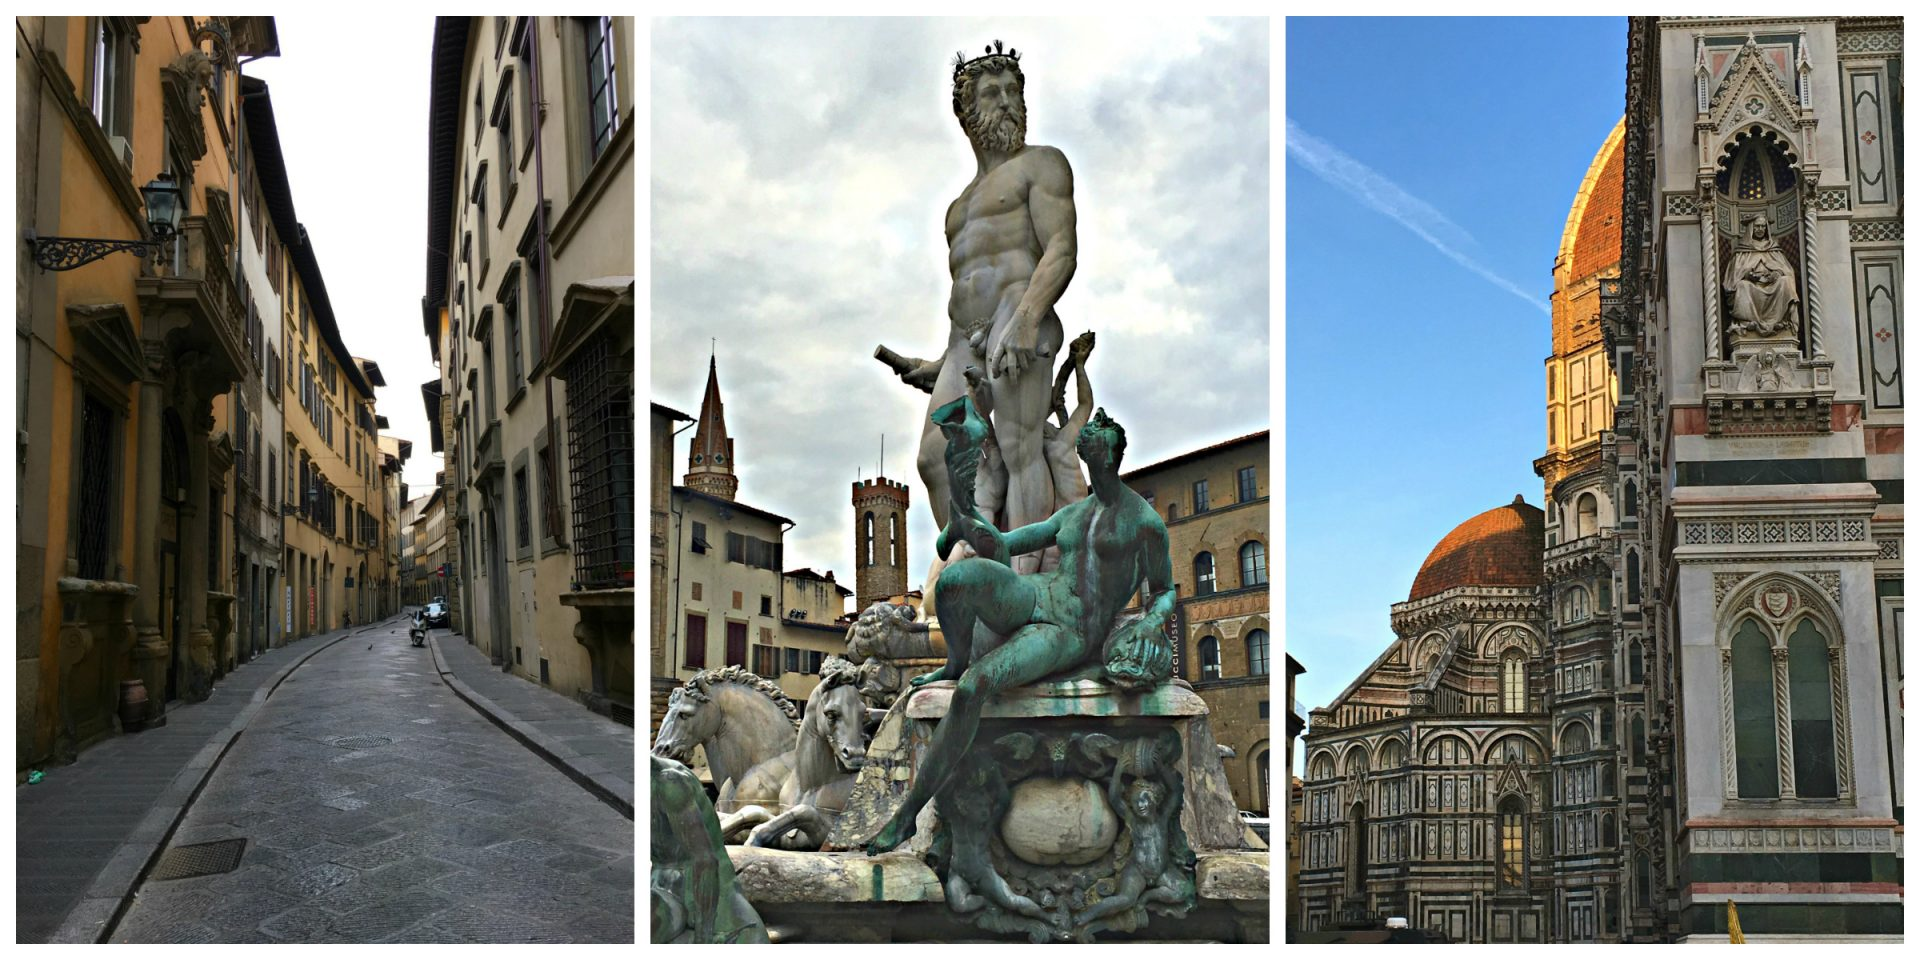 Florence, Italy (Firenze) Neptune, streets